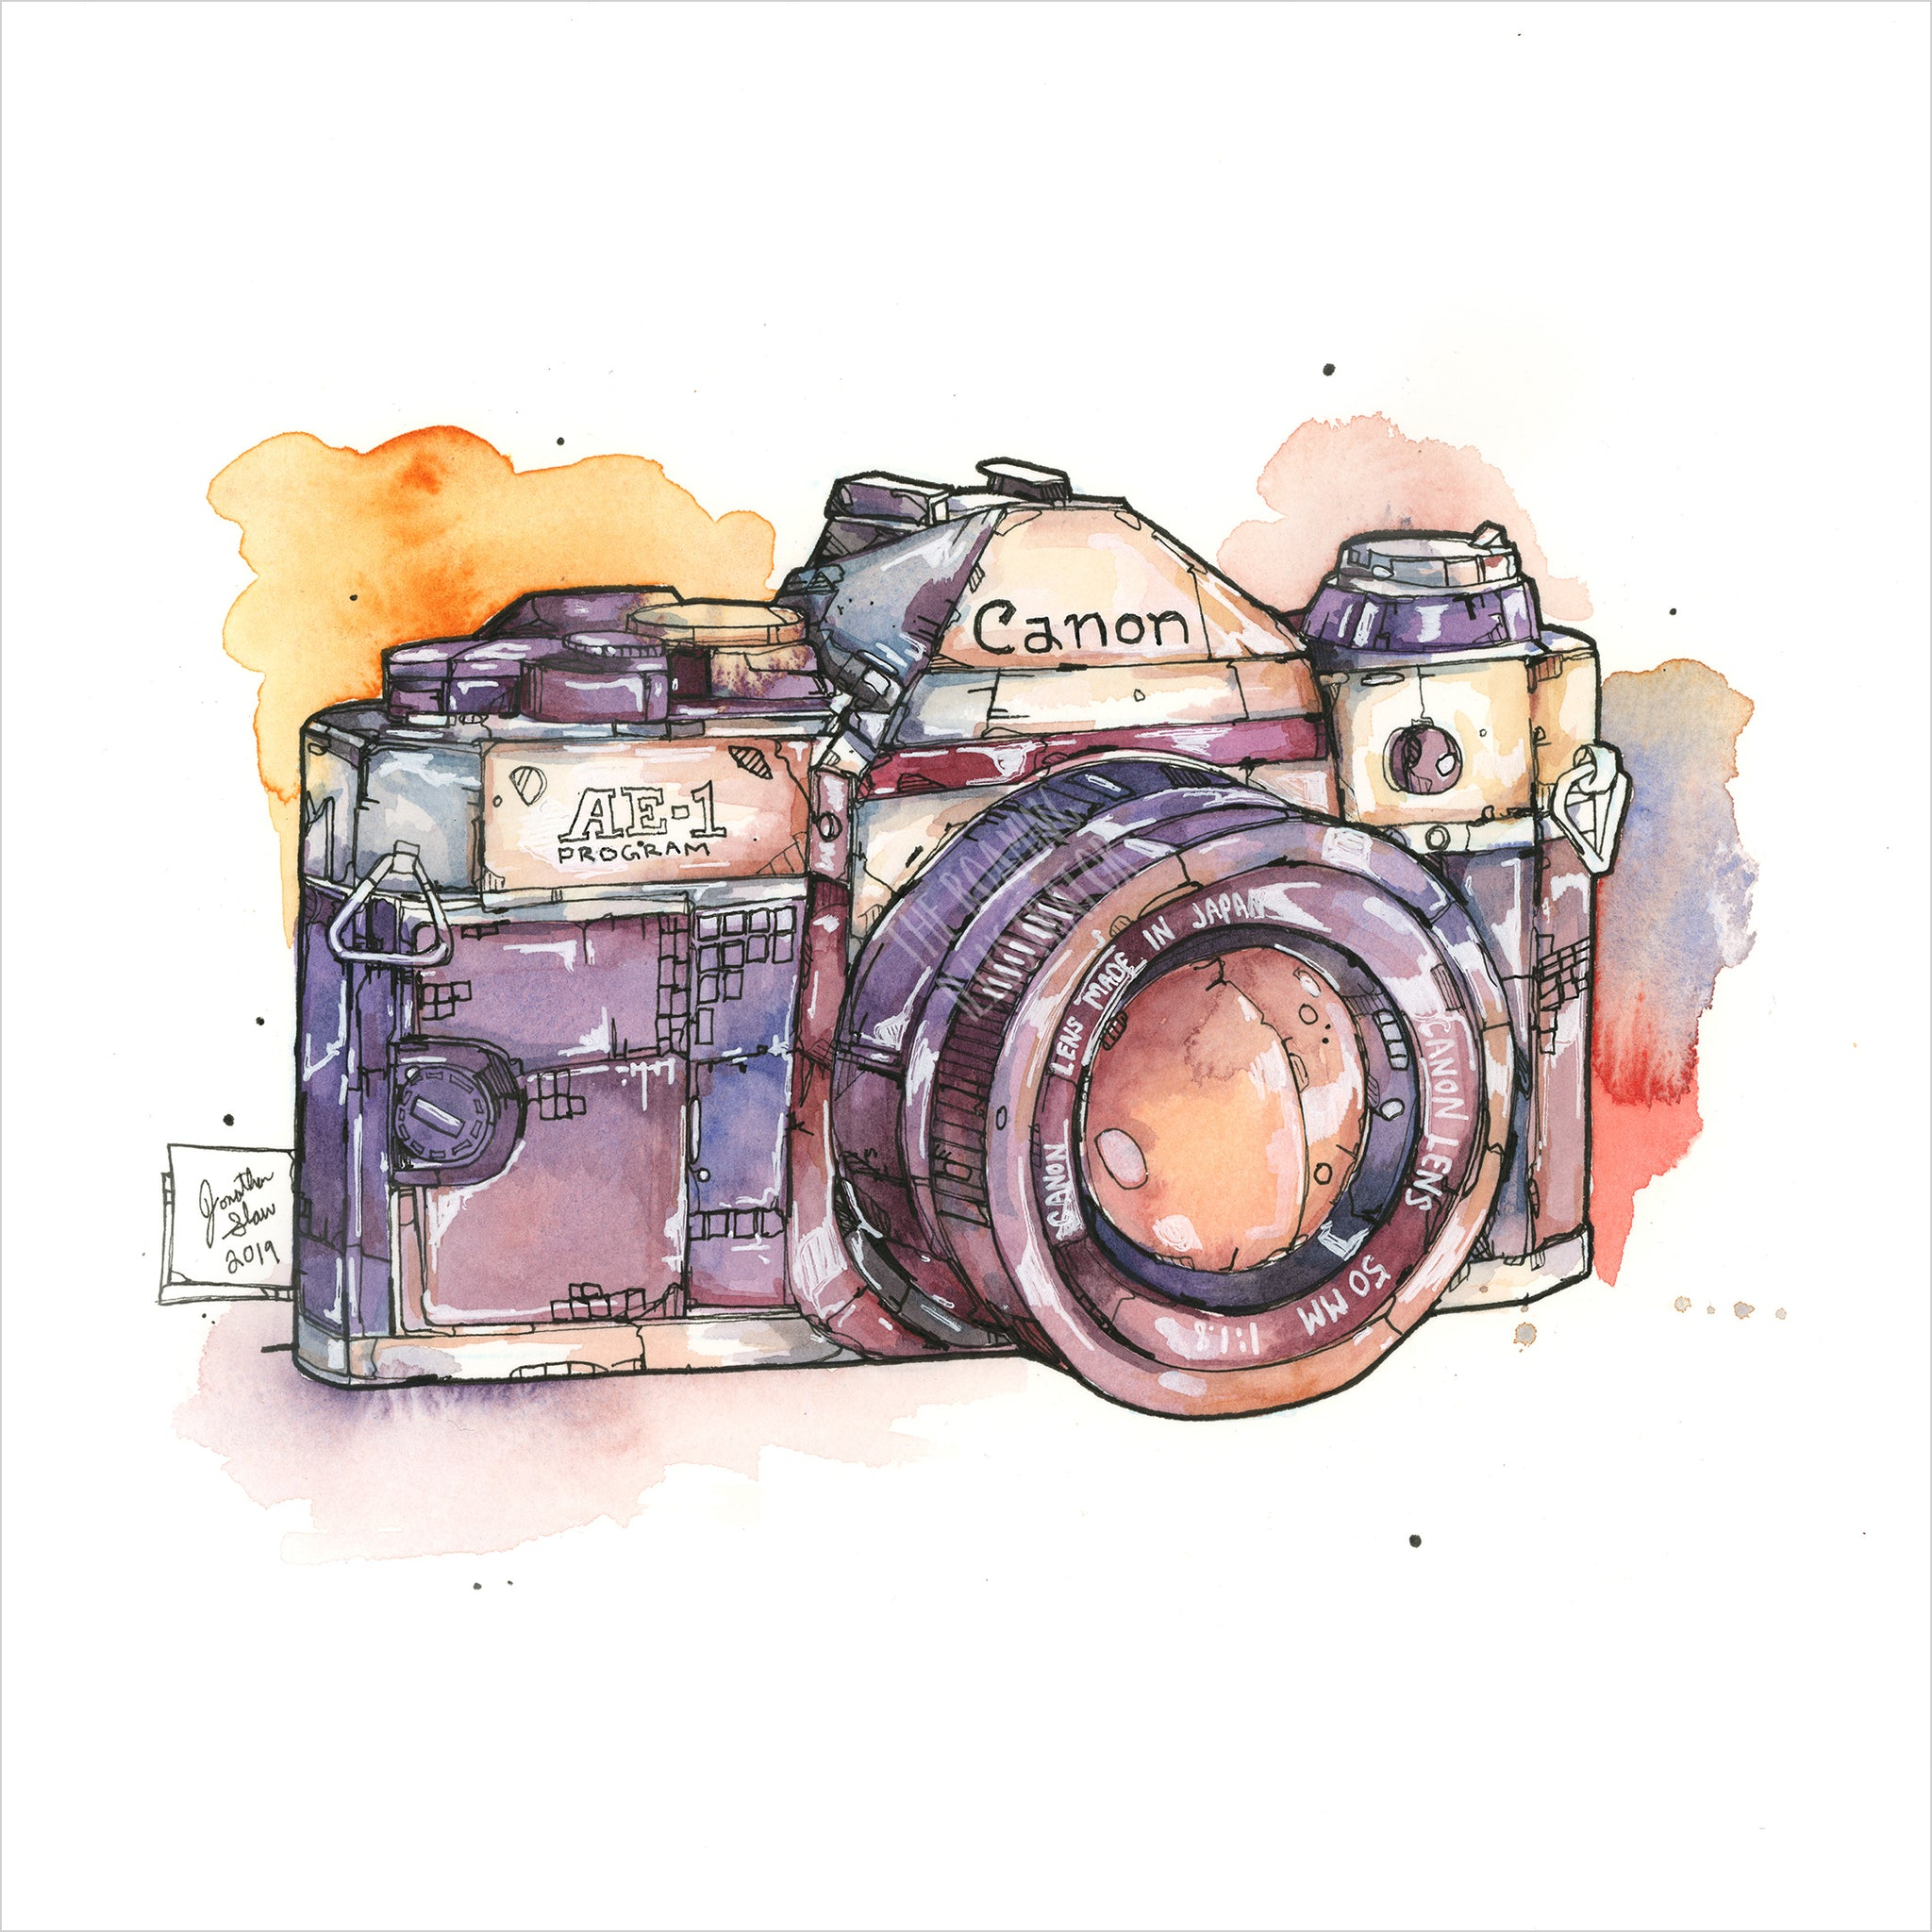 """35mm Film Camera"" - Original 8x10 Illustration (SOLD)"